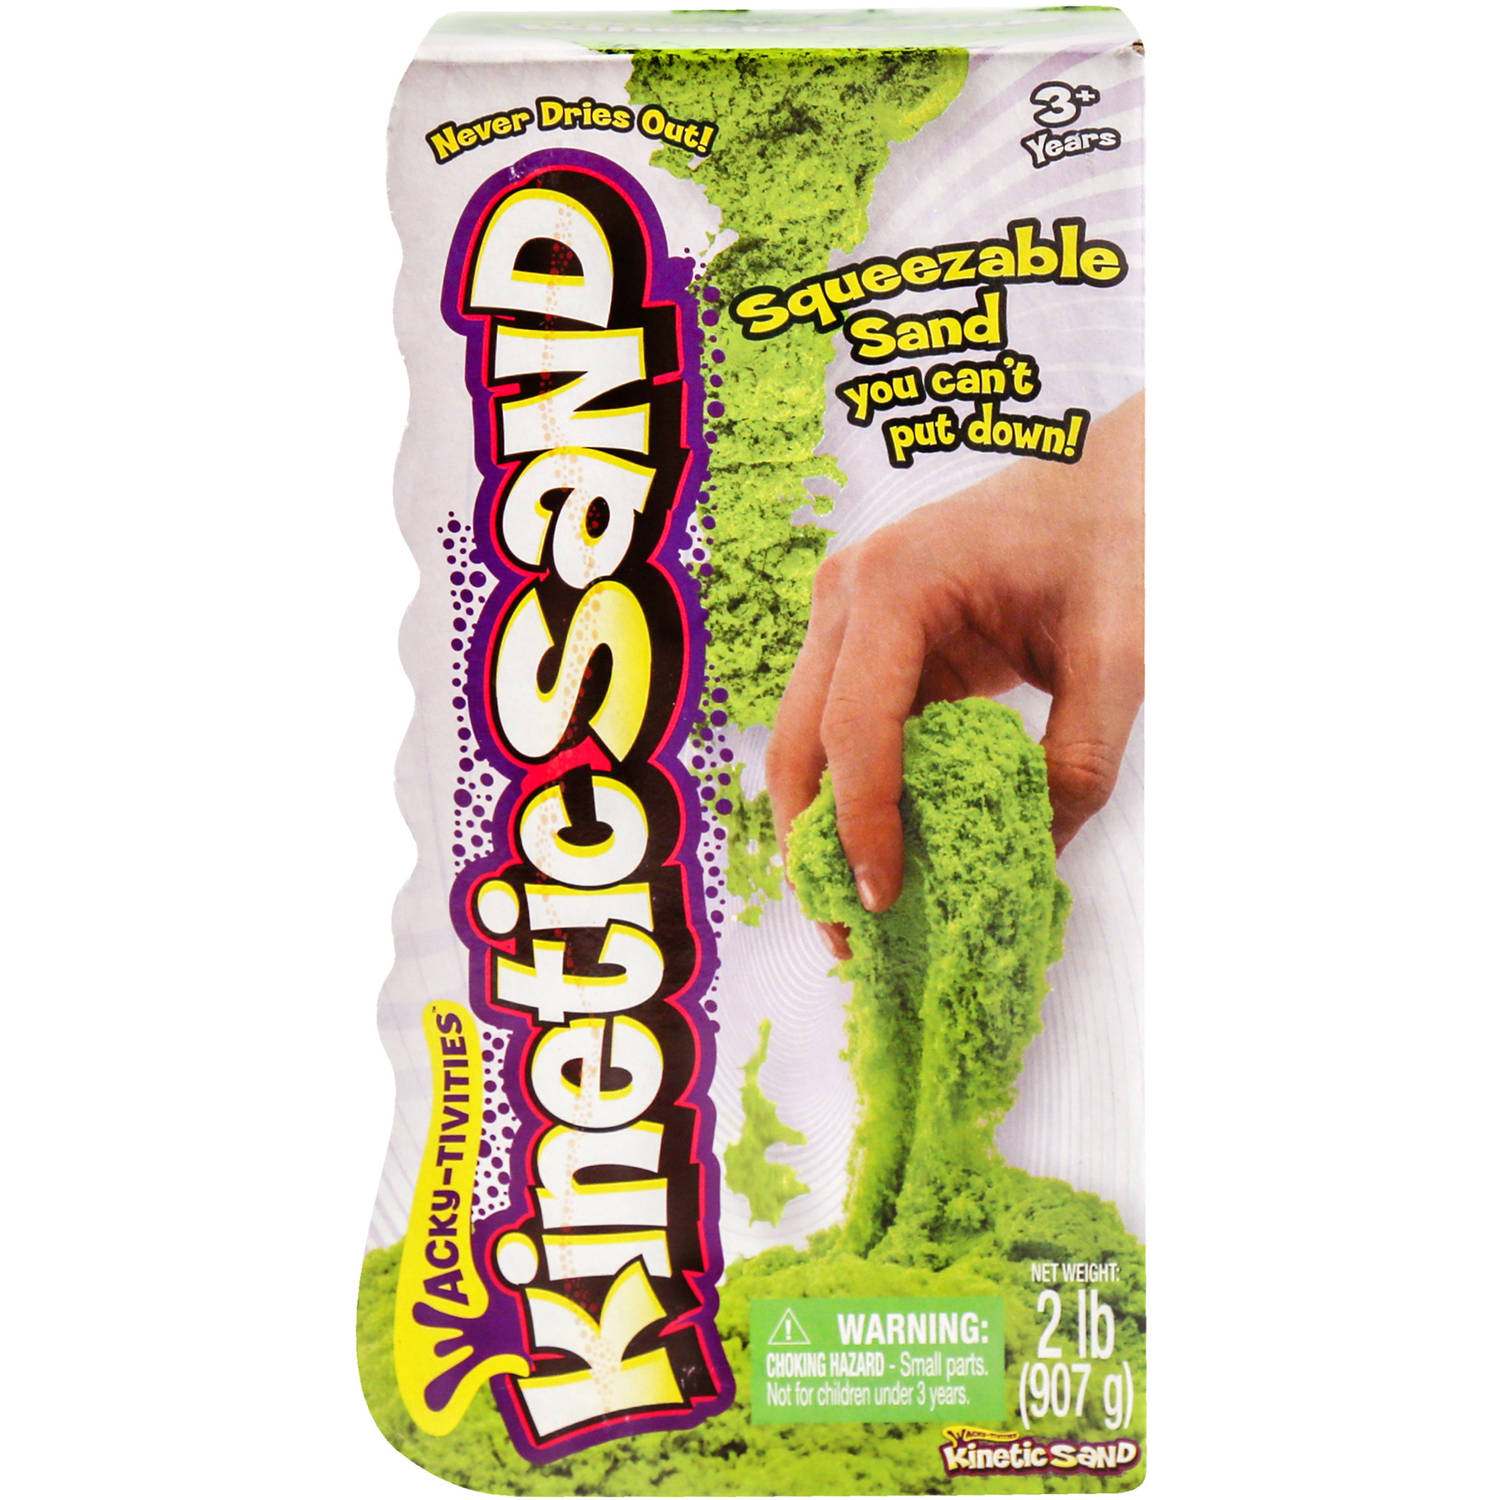 The One & Only Kinetic Sand 2 lb Bag, Neon Green